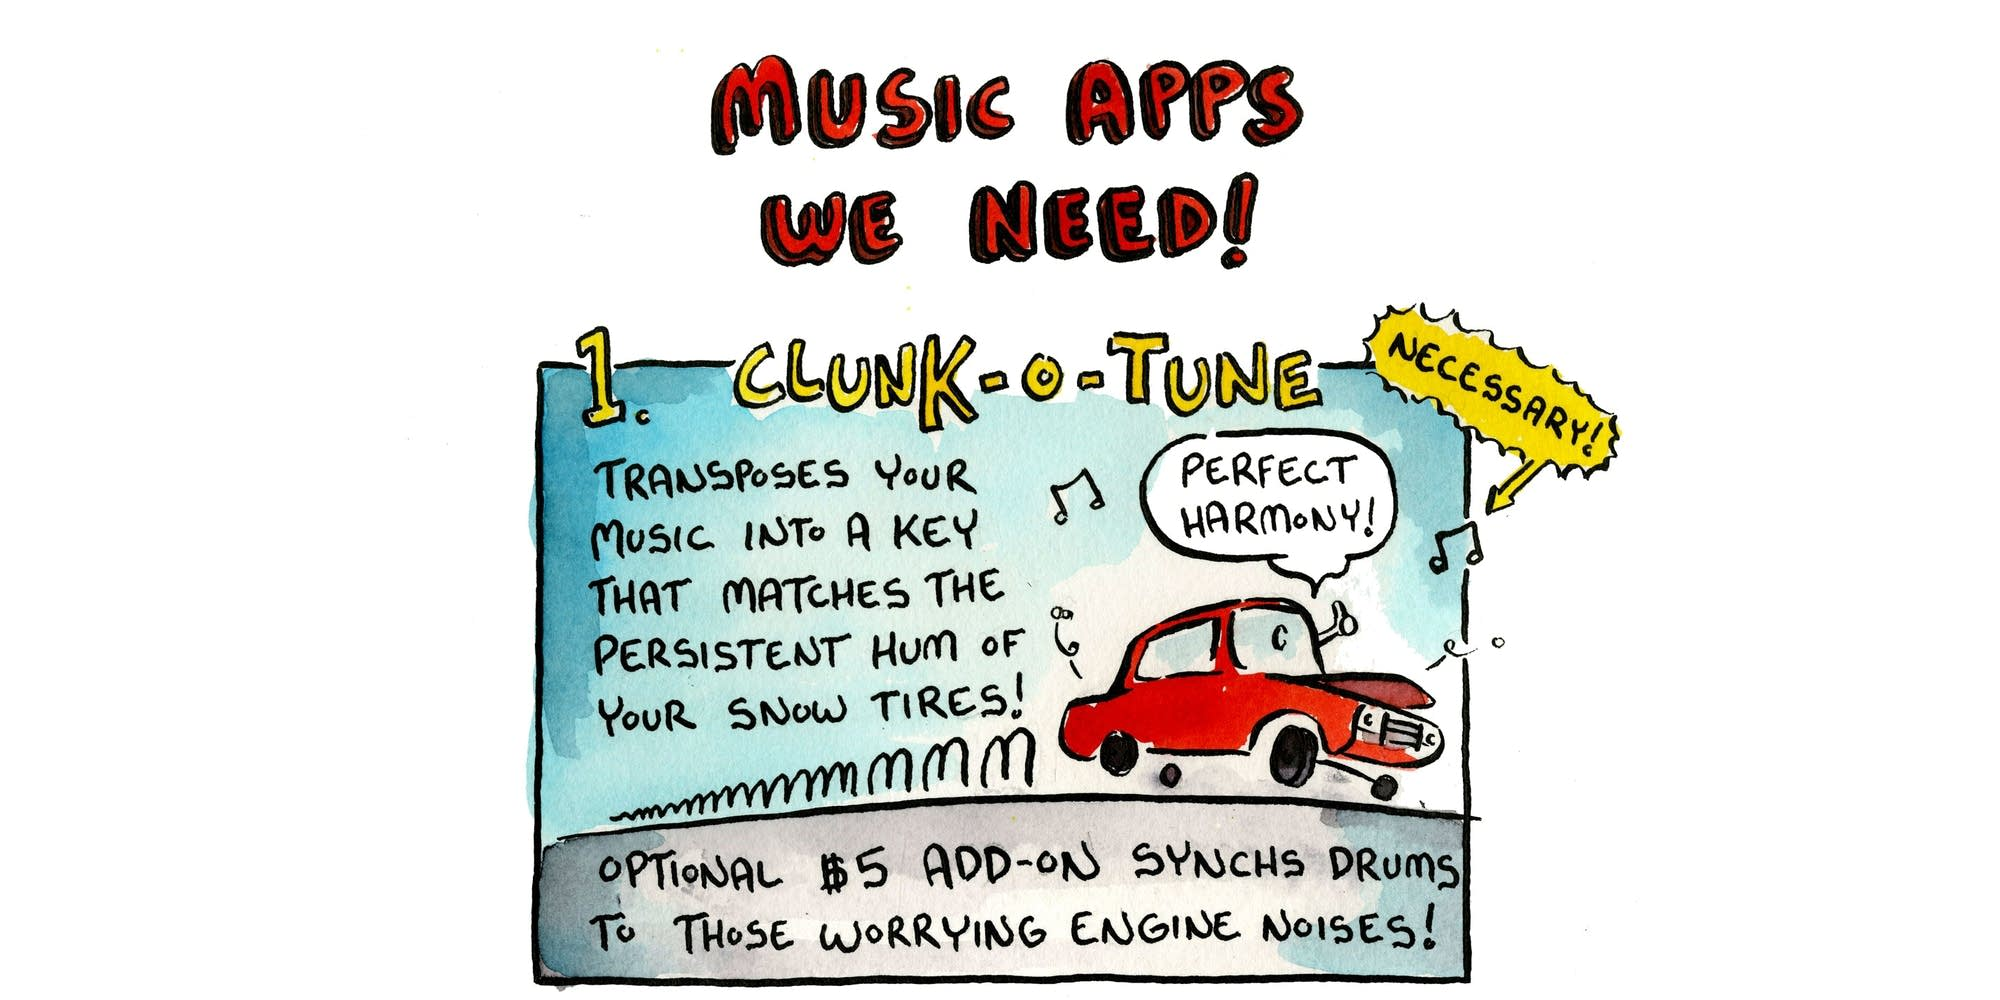 Music Apps We Need Lead image